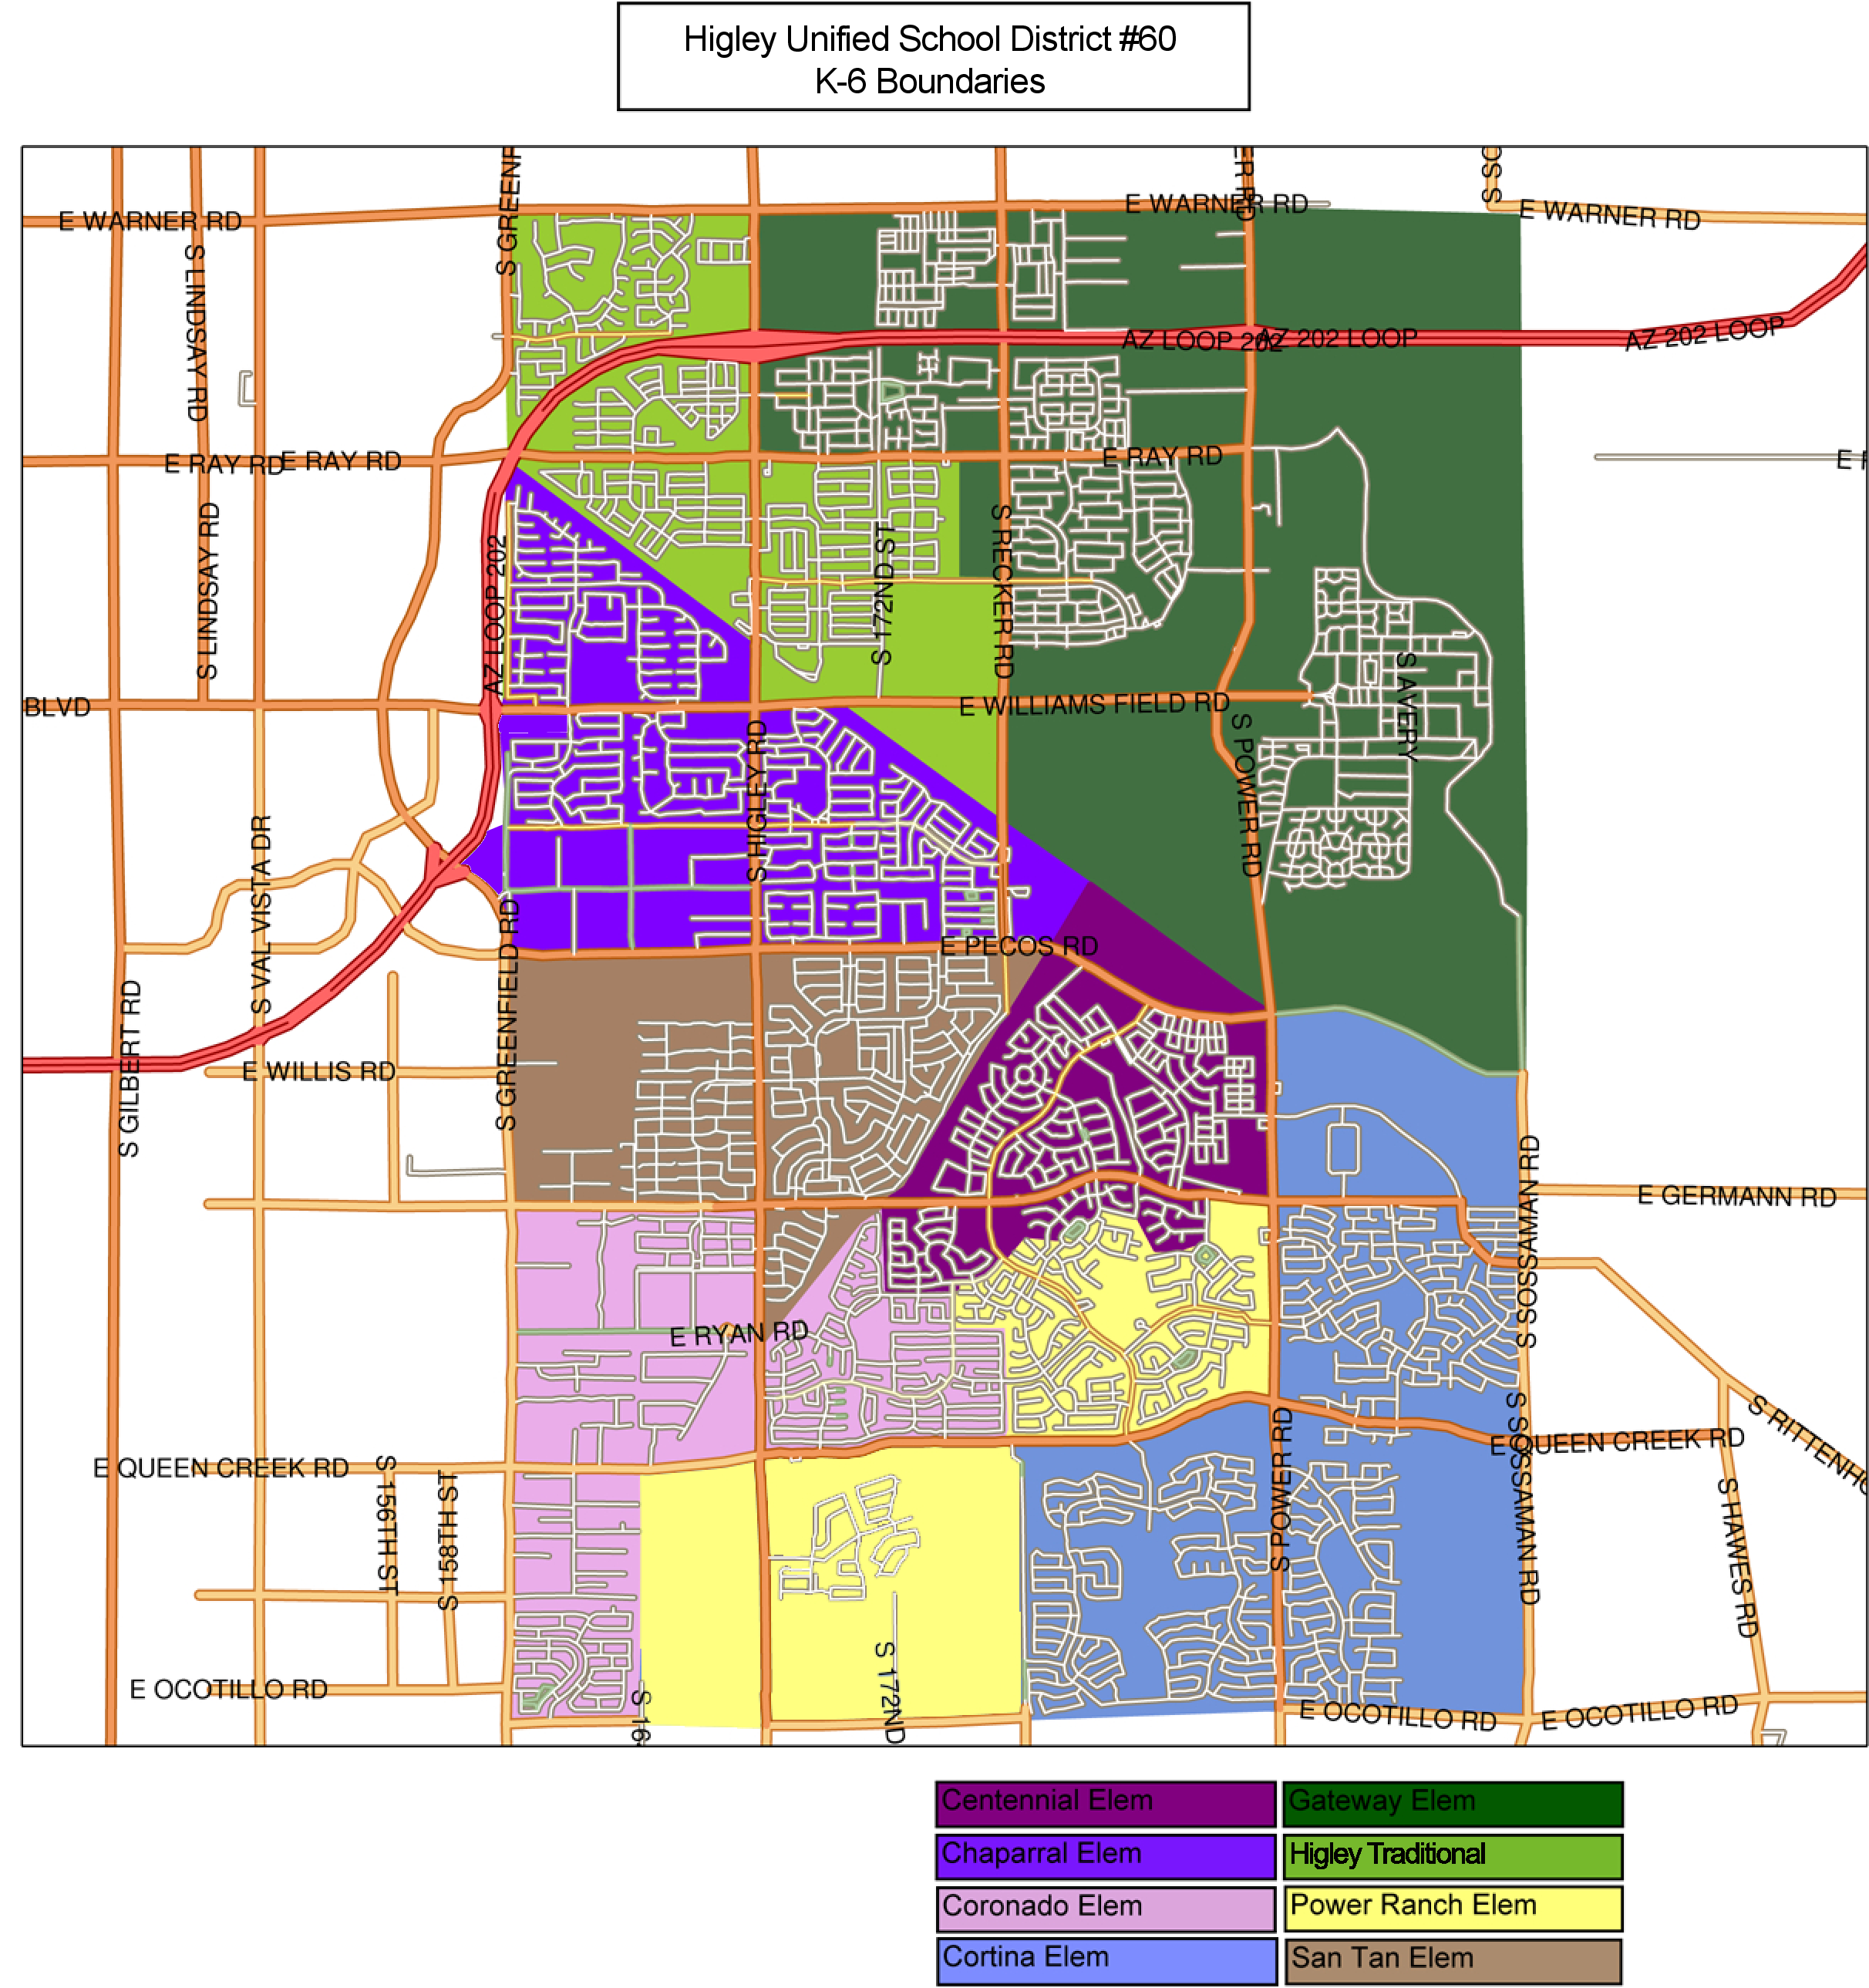 Higley USD Elementary School Boundary Map